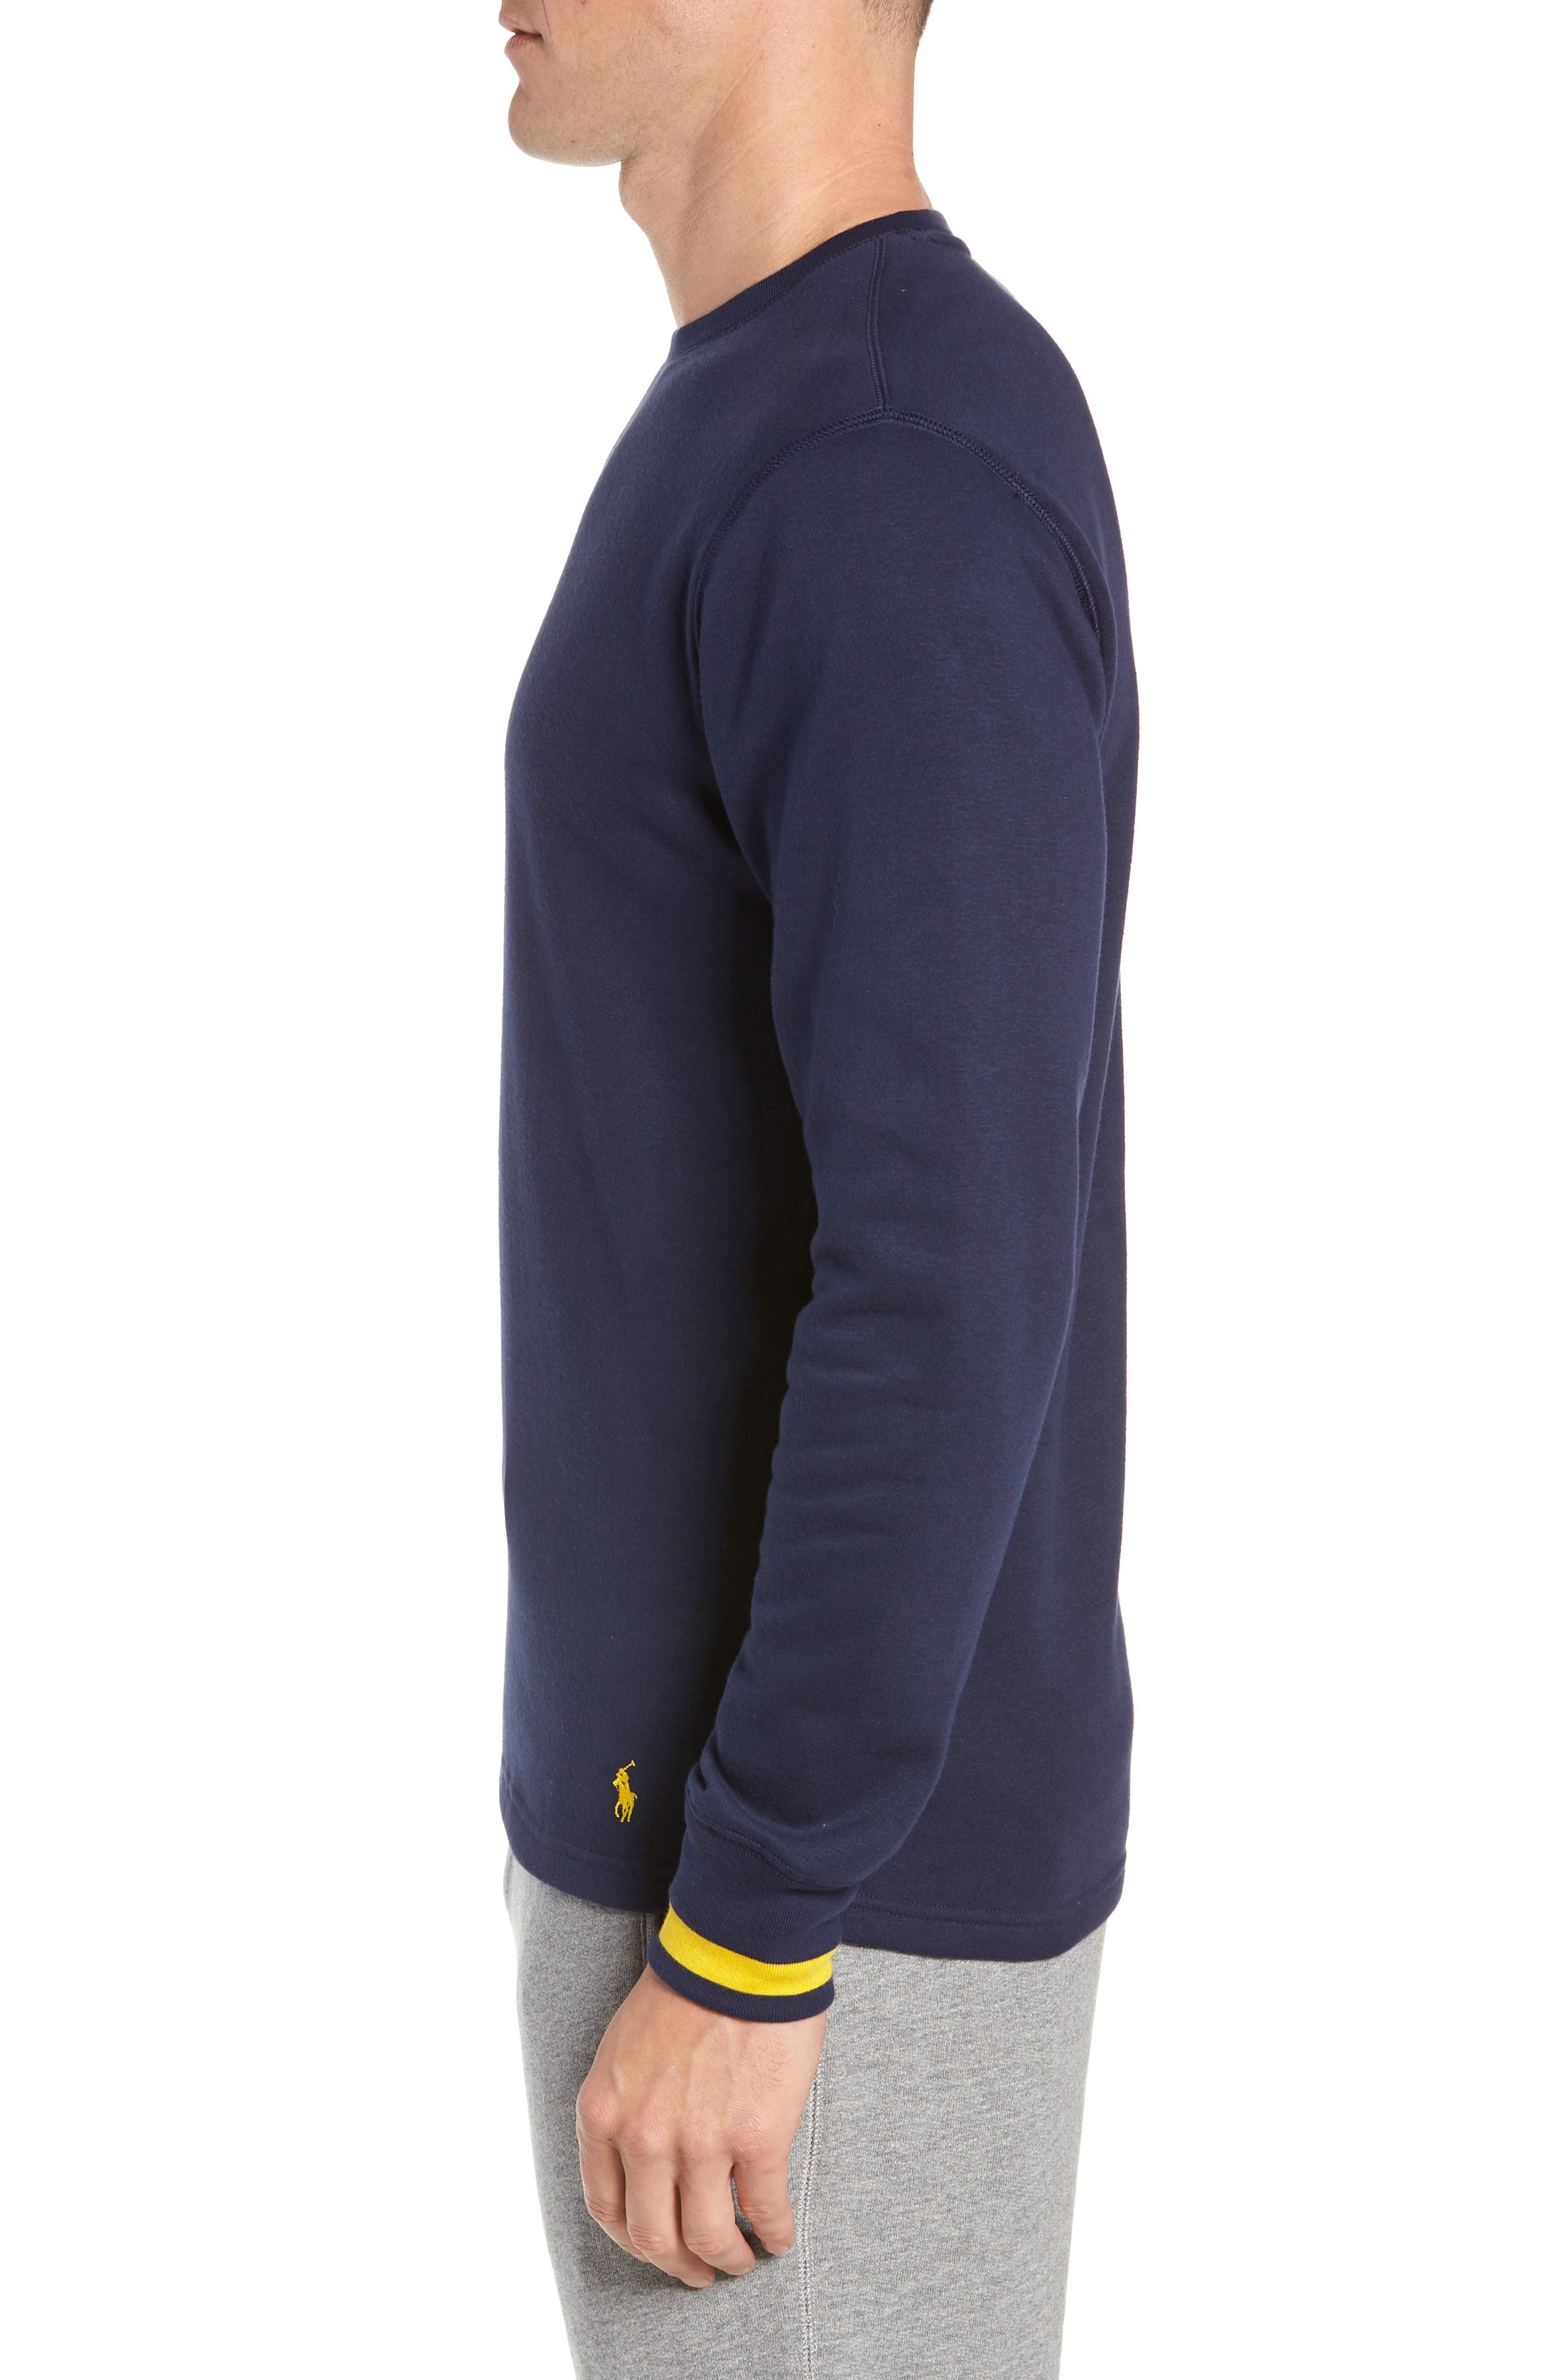 POLO RALPH LAUREN, Brushed Jersey Cotton Blend Crewneck Sweatshirt, Alternate thumbnail 3, color, CRUISE NAVY